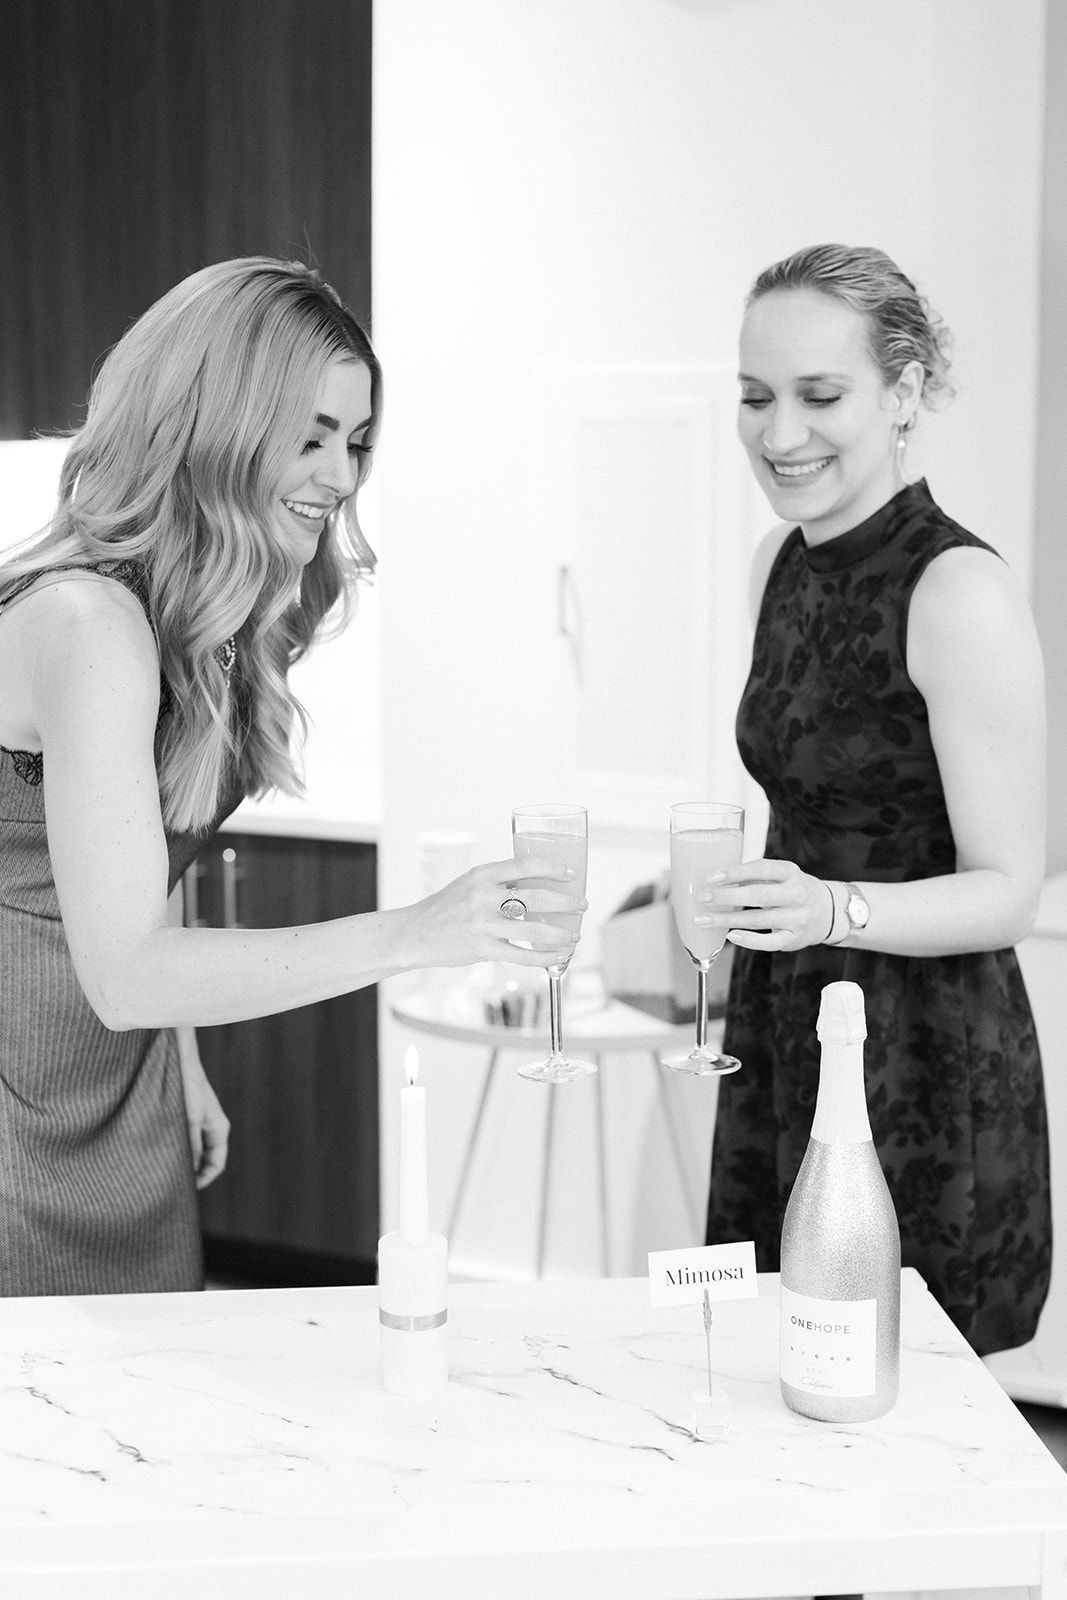 nyc_brunch_bridalshower_brides&besties-23.jpg